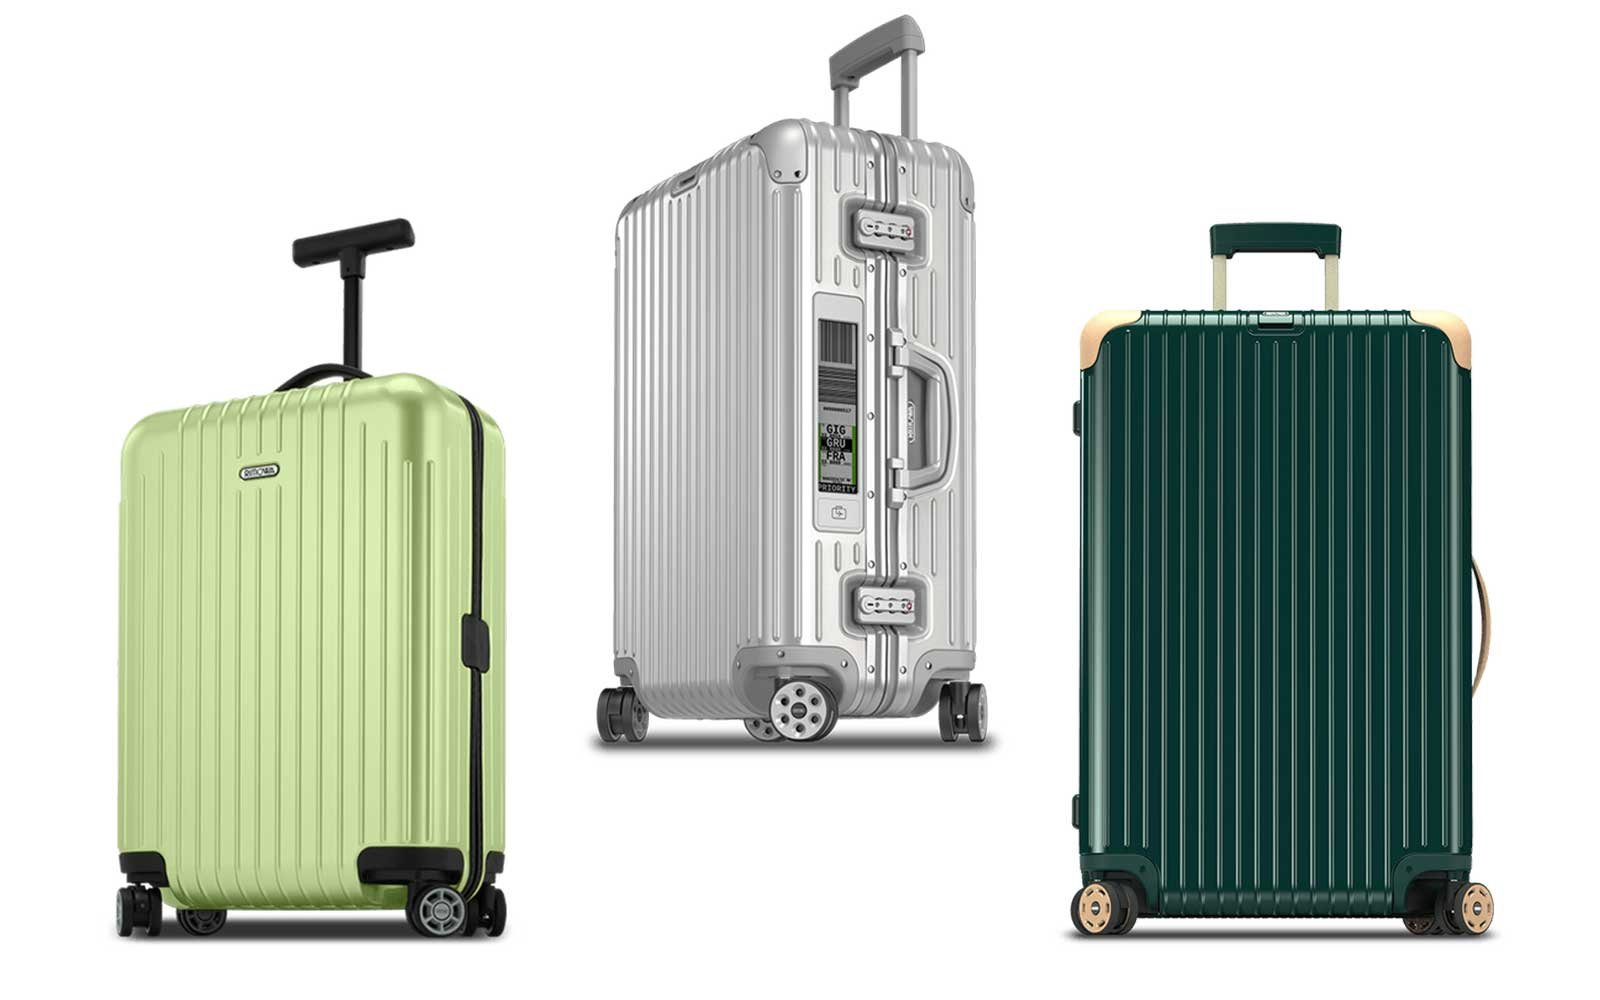 Rimowa Suitcases and Luggage